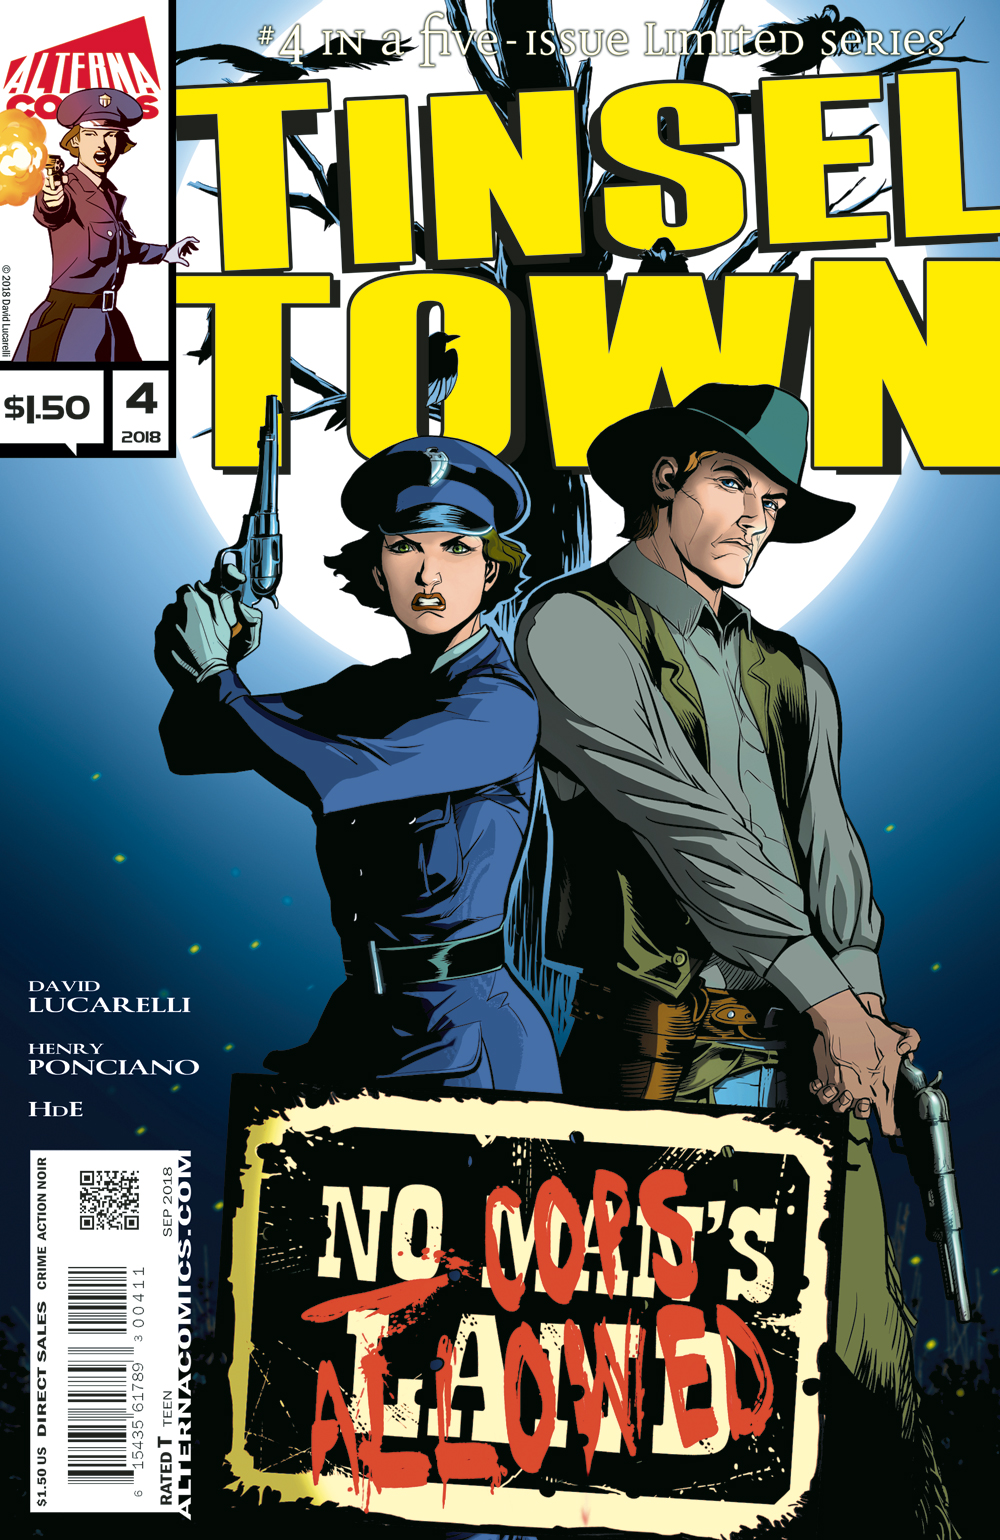 "TINSELTOWN #4 of 5 - Abigail and Tennessee Dan go undercover in ""No Man's Land"" looking for Abigail's missing friend. With danger around every corner, the duo stumble onto something sinister and get in more trouble than they bargained for.(W) David Lucarelli(A) Henry Ponciano(L) HdE$1.50, 32 pgs, Crime/Action/Noir, Full Color, 12+"